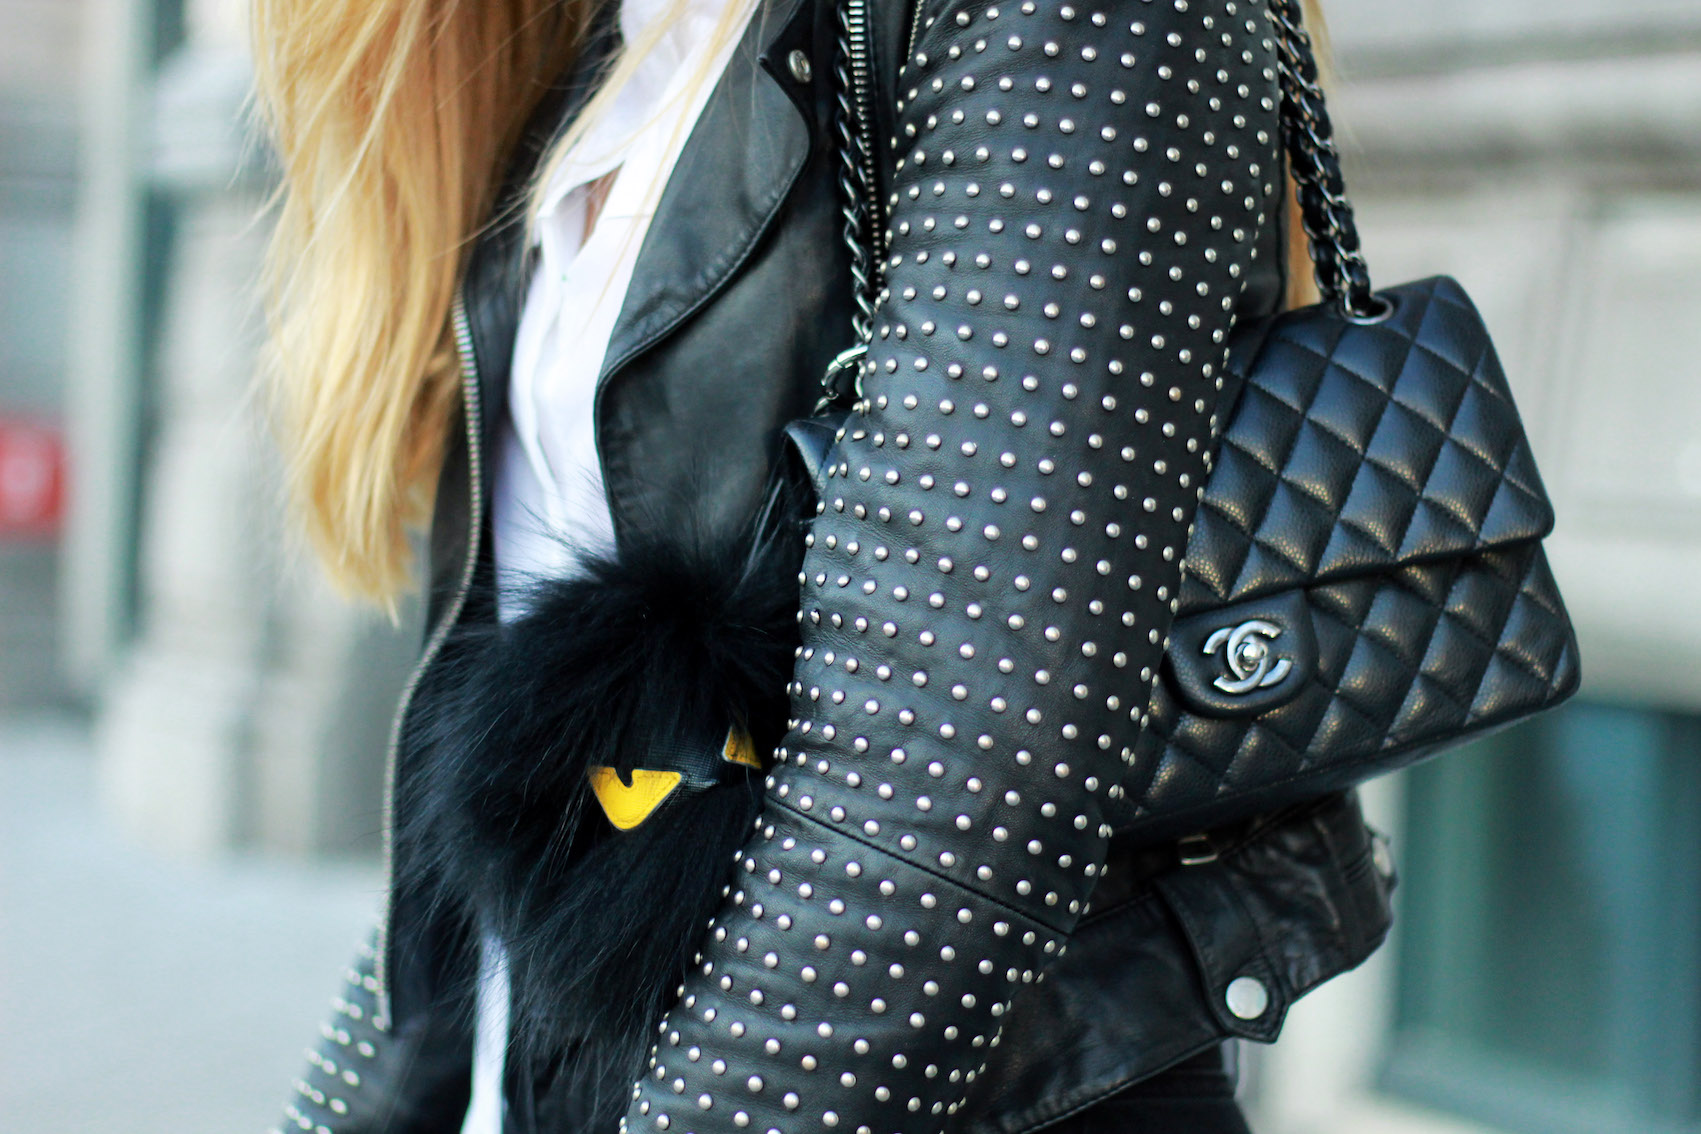 floortjeloves, 5 tips to work productively from home, rich & royal, louis vuitton, river island, leg avenue, gucci, chanel, chanel classic, chanel bag, gucci slippers, leather jacket, H&M, white shirt, fendi keychain, fishnet tights